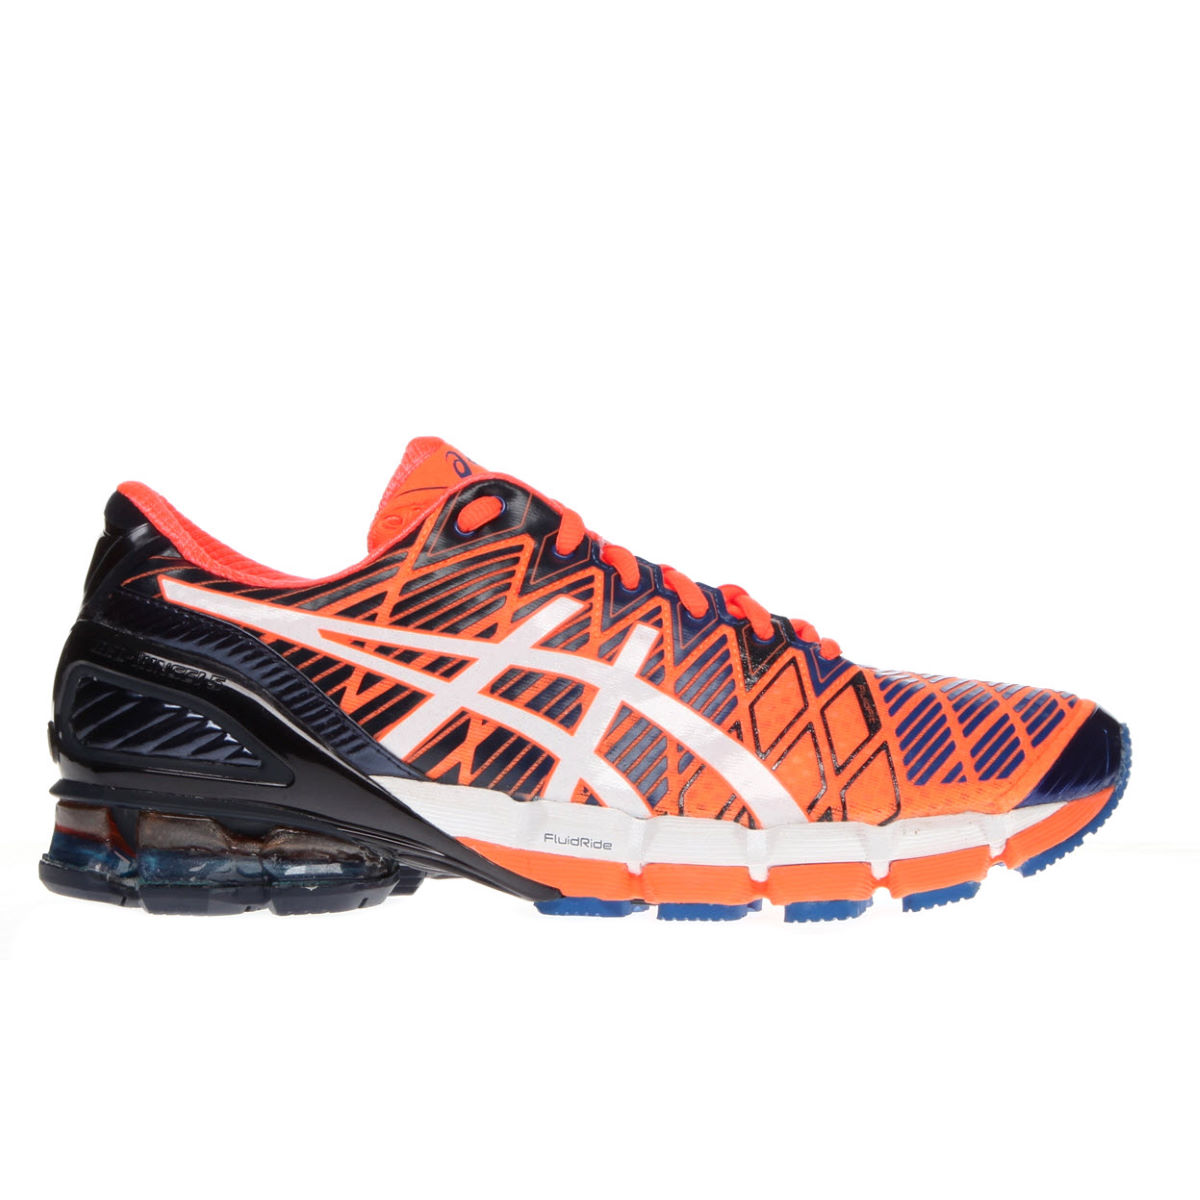 wiggle asics gel kinsei 5 shoes aw13 cushion running shoes. Black Bedroom Furniture Sets. Home Design Ideas